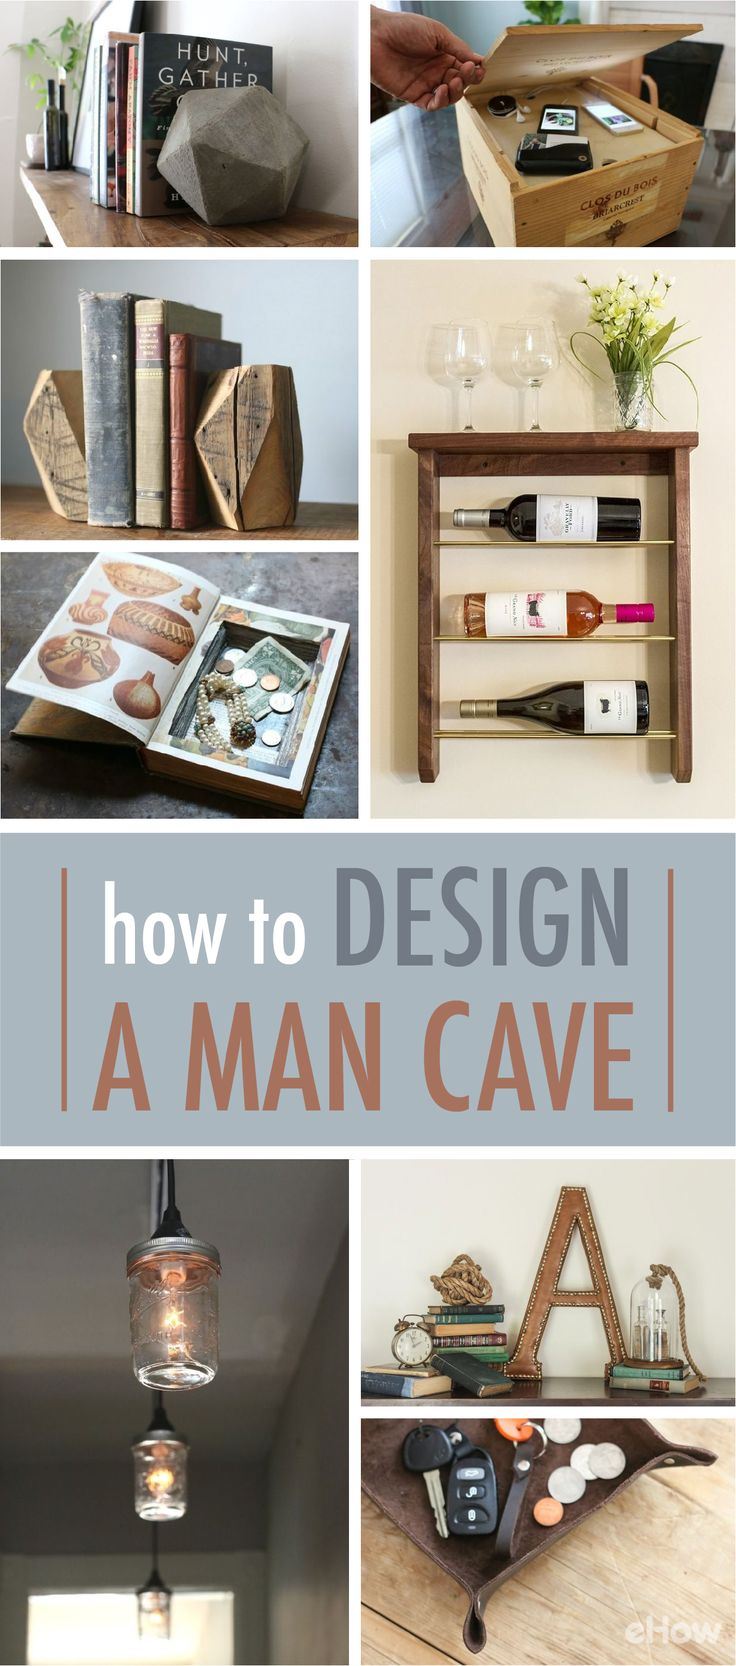 Decorate your man cave with stuff from this list for a truly modern man cave. Wood, leather and even some mason jar crafts that are all easy and manly. http://www.ehow.com/how_2307039_design-man-cave.html?utm_source=pinterest.com&utm_medium=referral&utm_content=freestyle&utm_campaign=fanpage